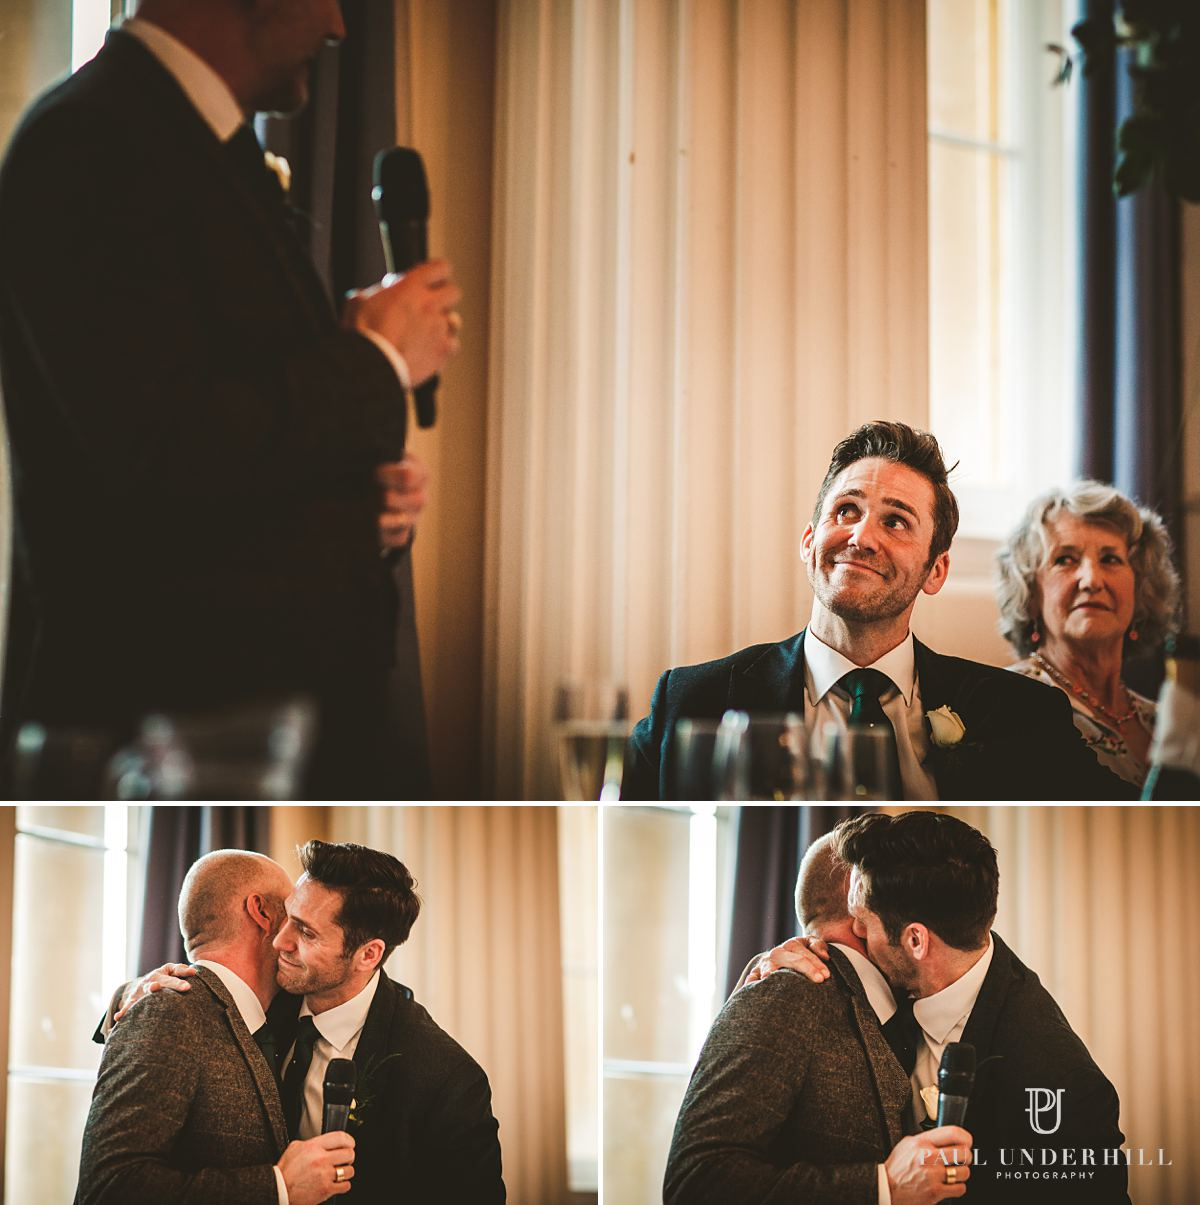 Wedding documentary photography speeches